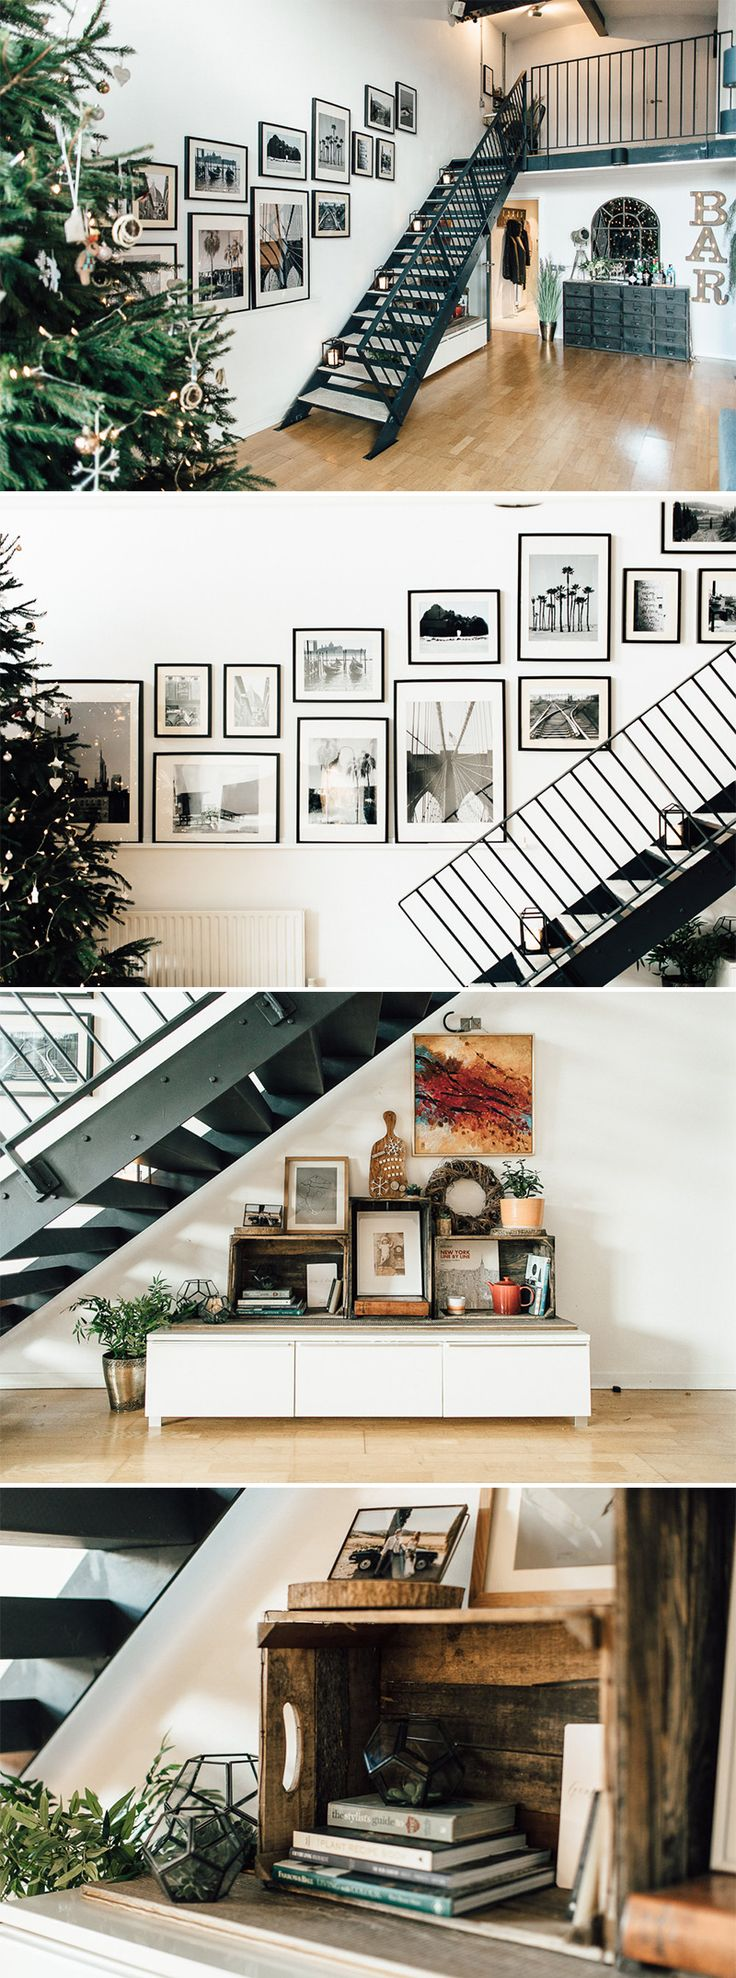 modern industrial open plan living | Open staircase | loft style apartment | loft style apartment inspiration | Gallery wall | Stair gallery wall | Under stairs styling | black and white gallery wall